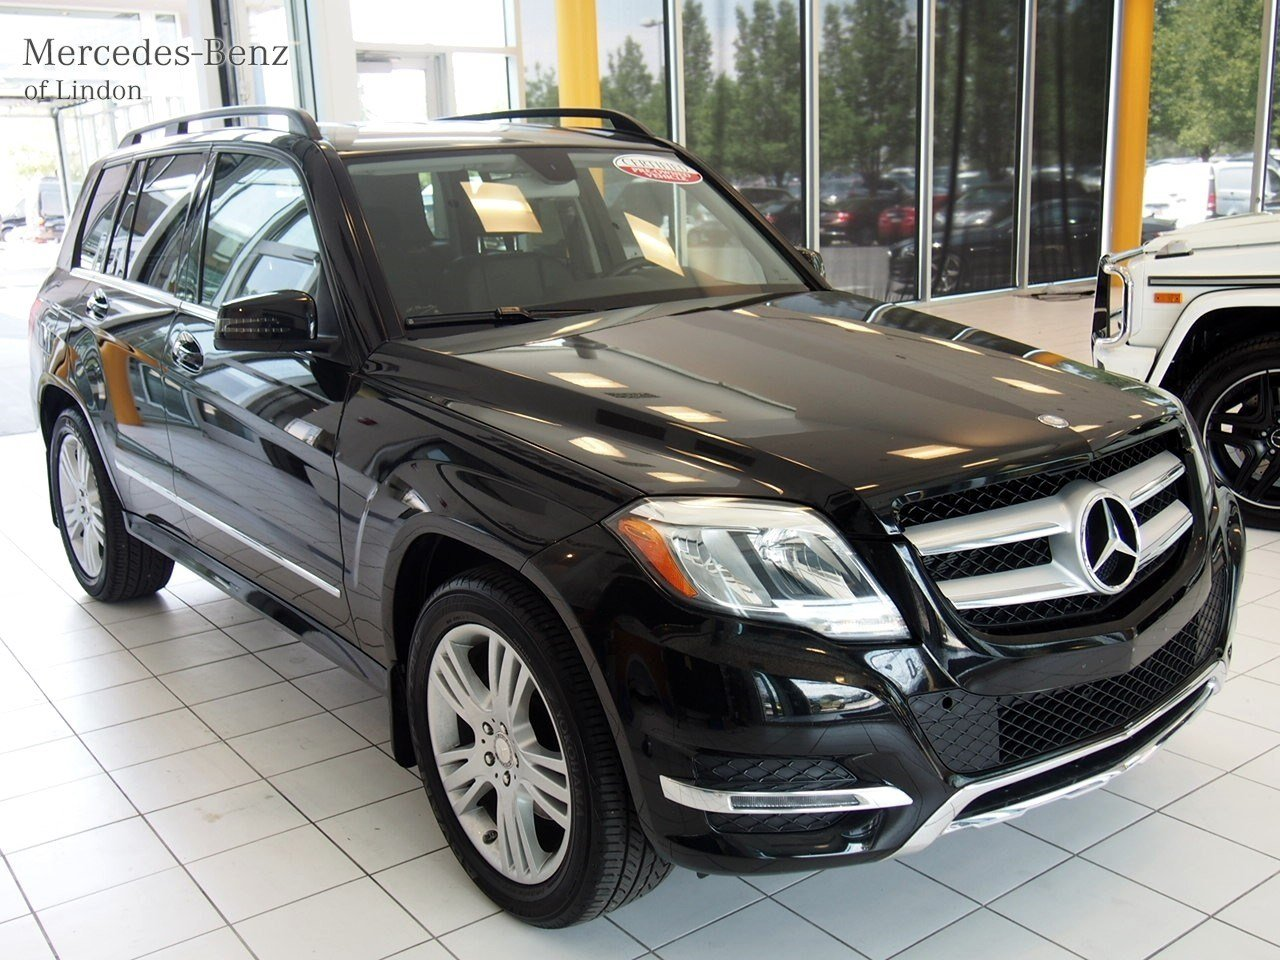 Certified pre owned 2014 mercedes benz glk glk 350 suv in for Mercedes benz cpo